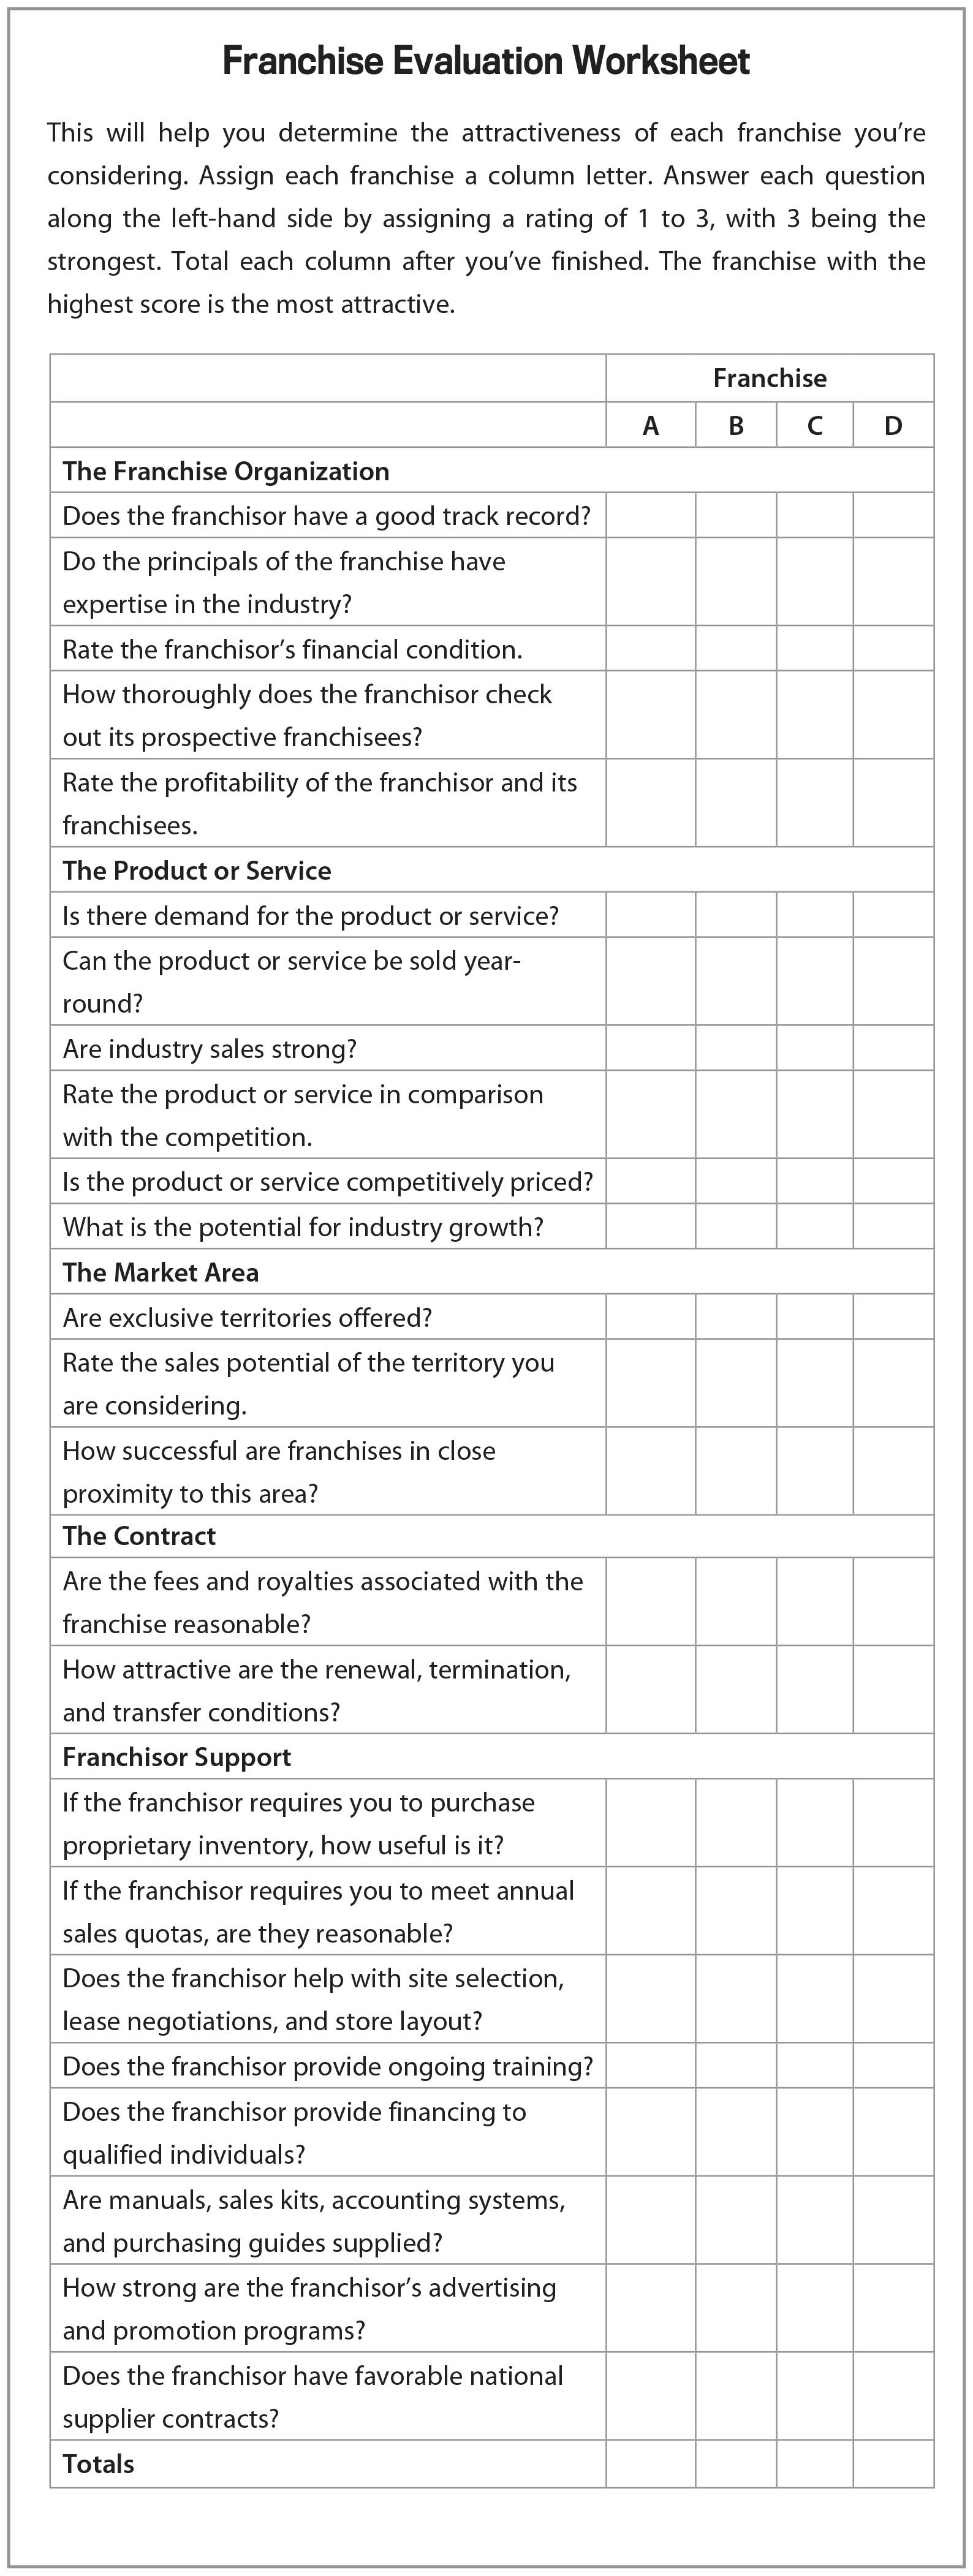 Worksheets Promotion Points Worksheet guide to small business ideas click enlarge franchise evaluation worksheet